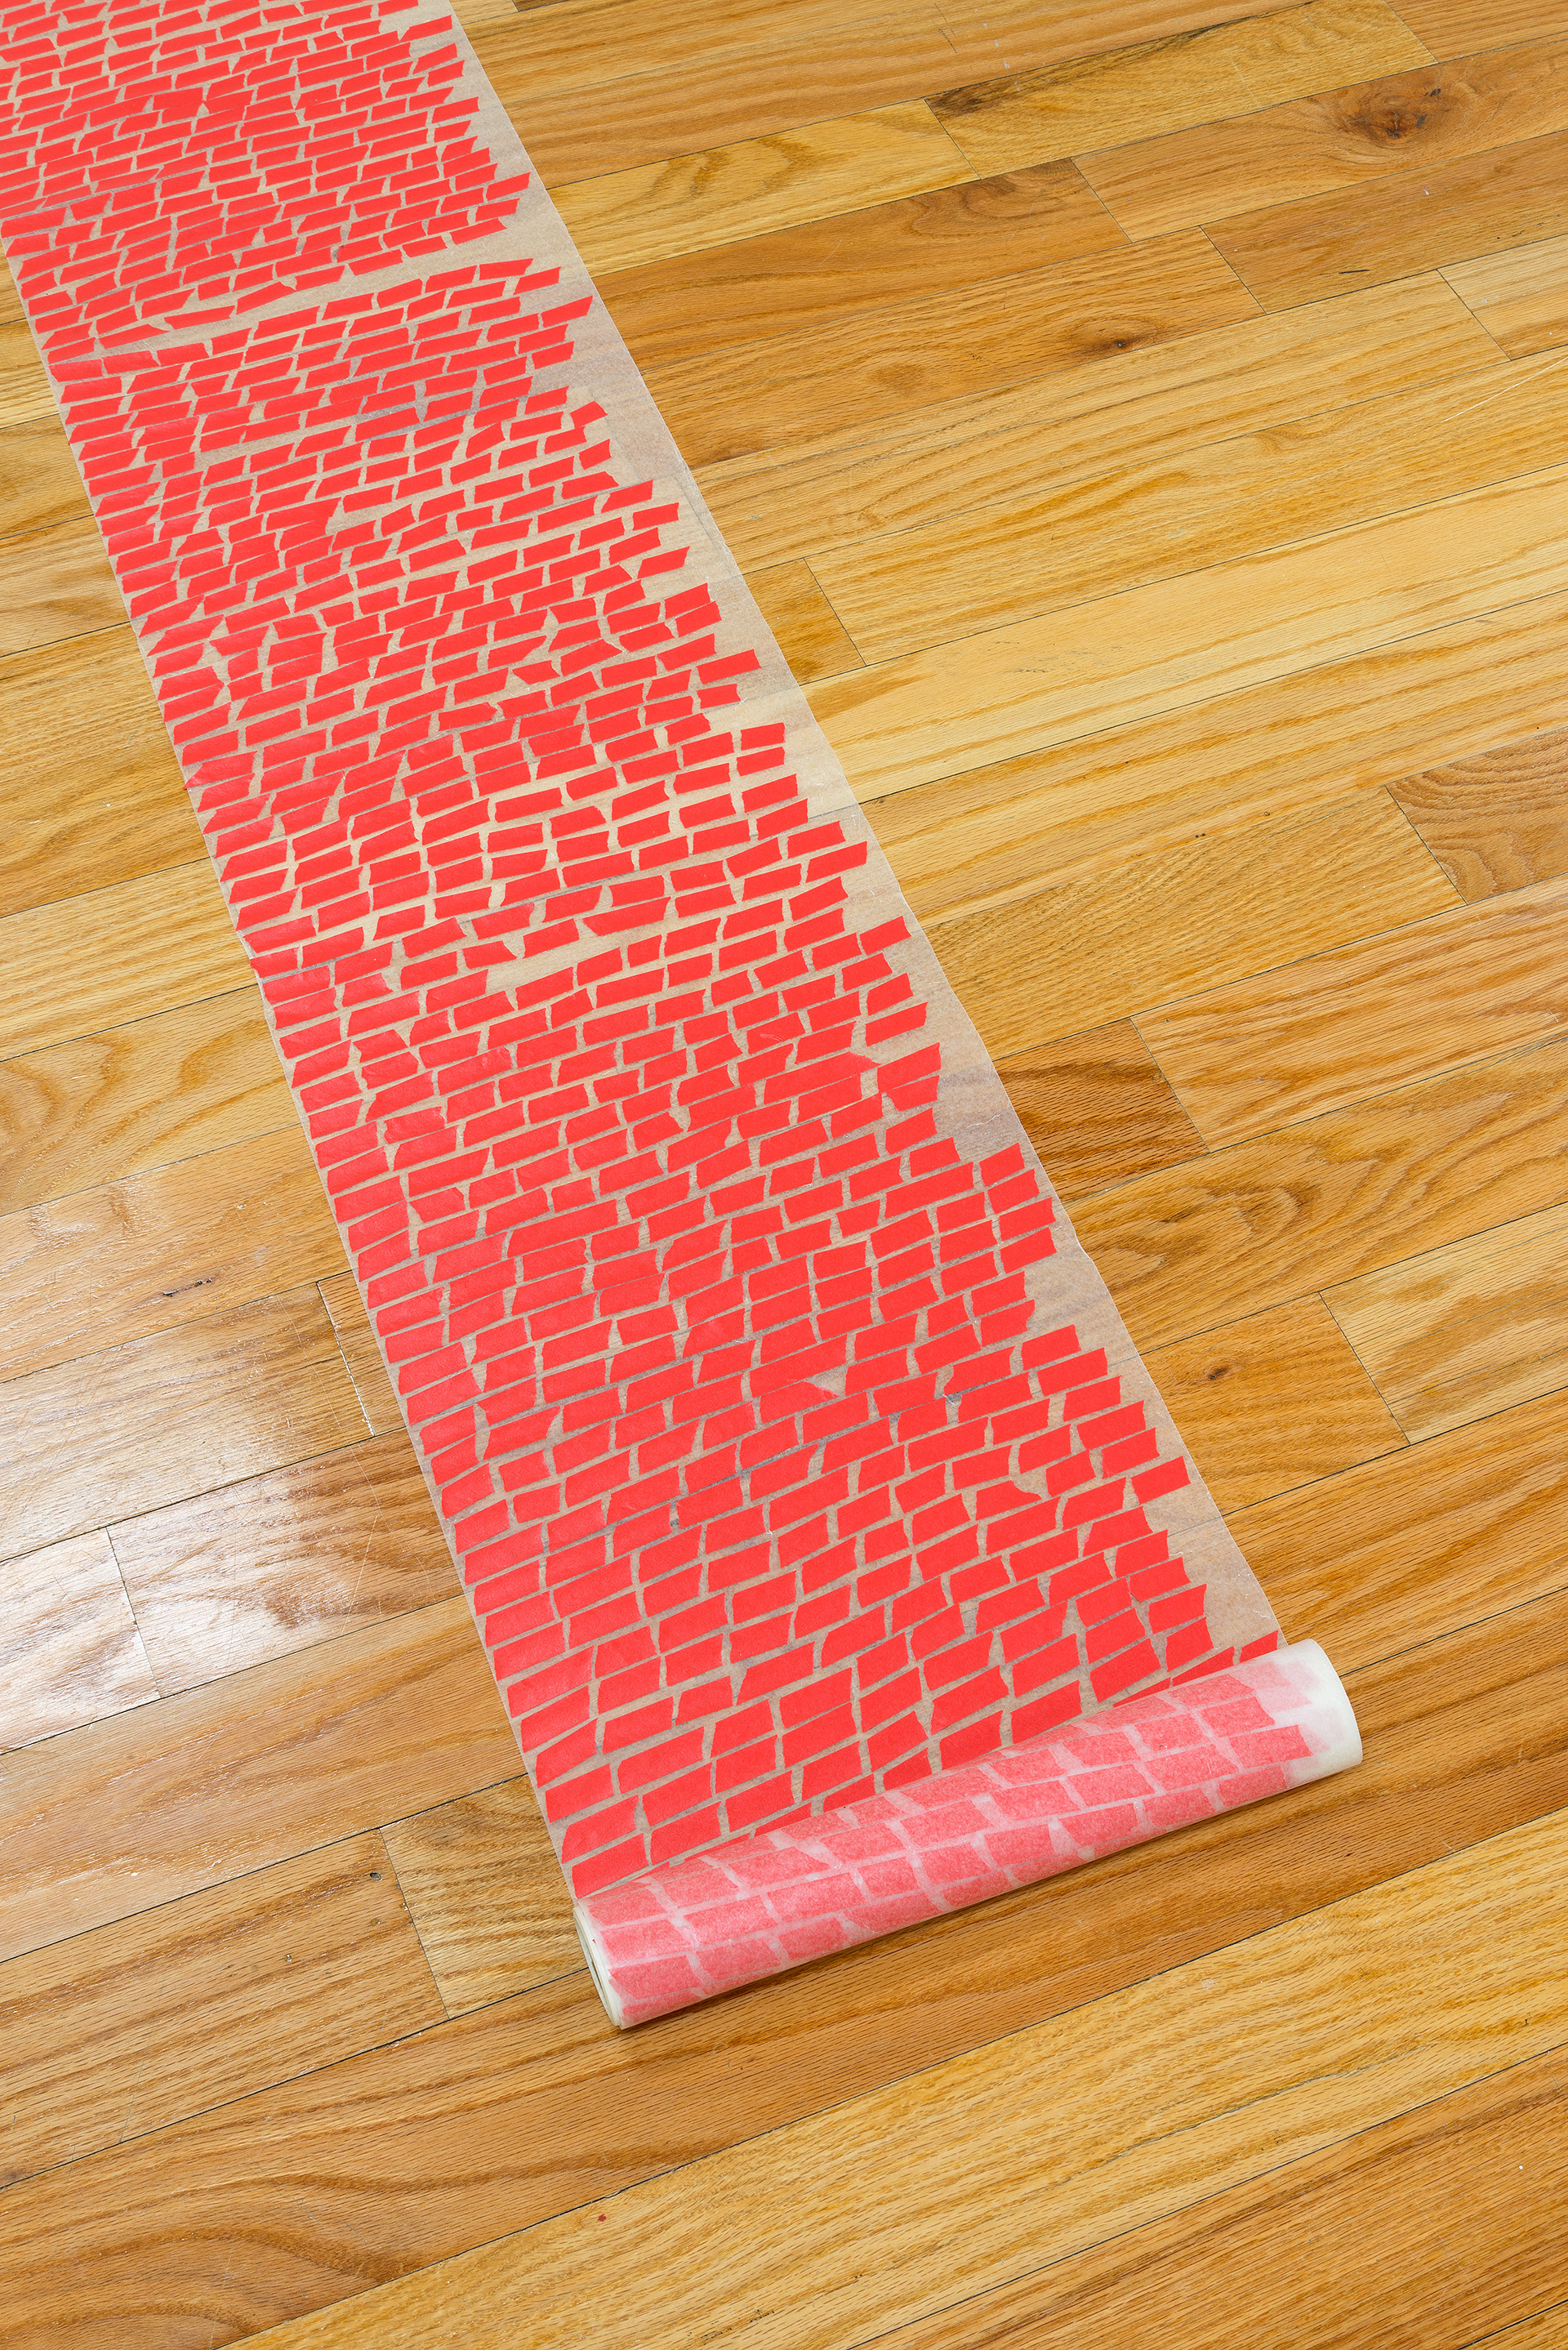 Making and Giving Up (Space)   2015  fabric, tracing paper, paint, wood, masking tape, wax paper  10' x 15' x 10'